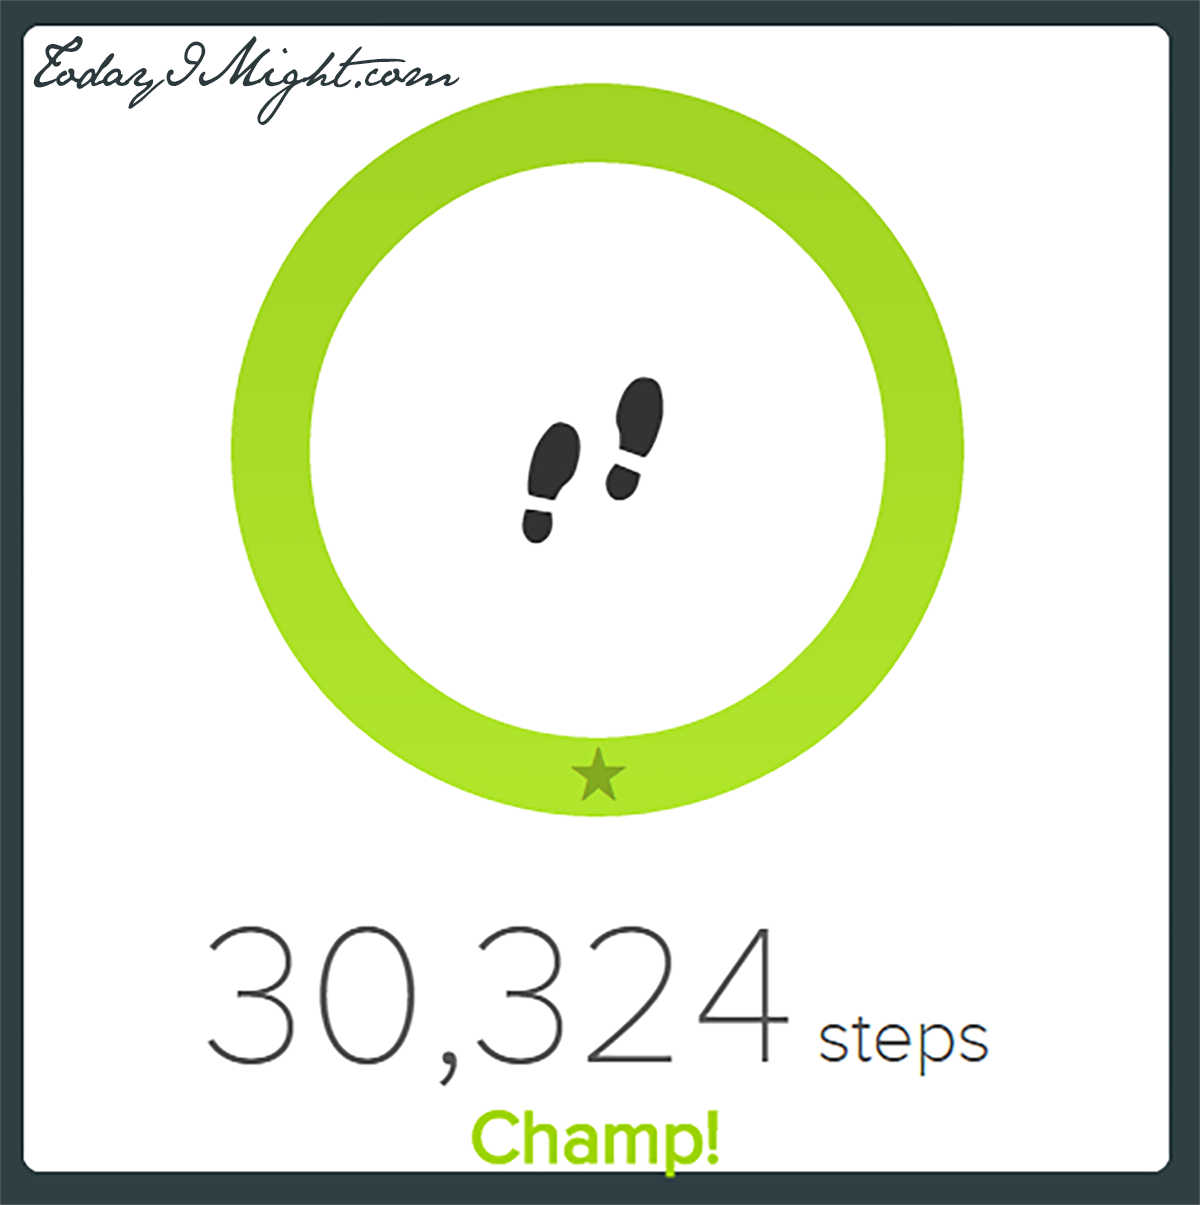 todayimight.com | Achieving 30,000 Steps | 30,000 Steps